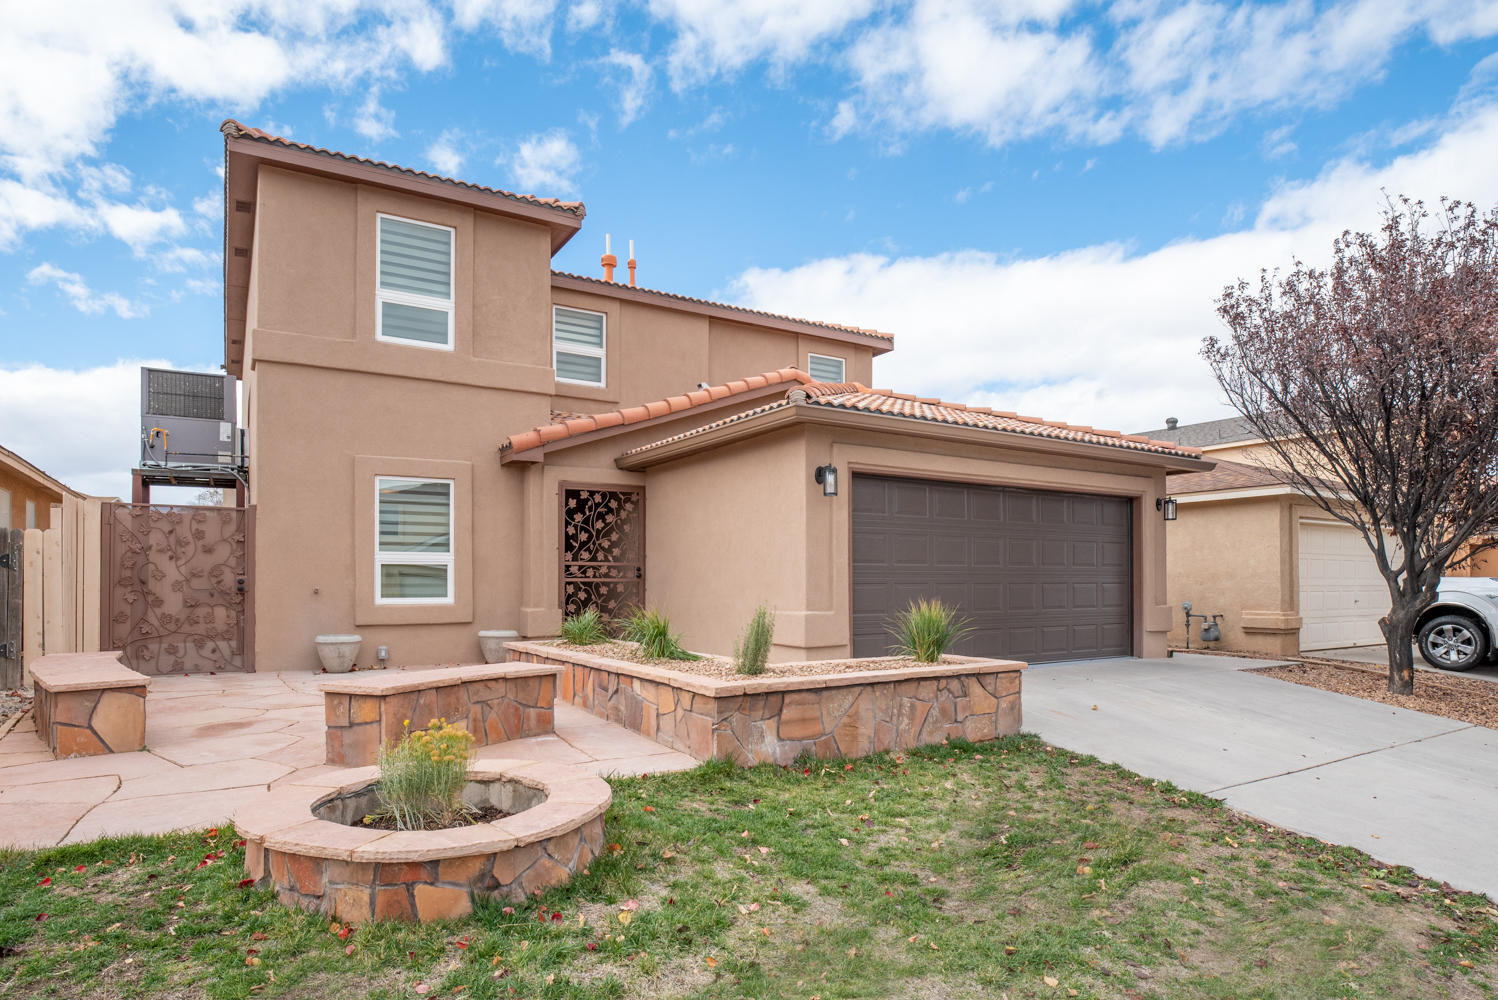 This house is absolutely loaded with amenities! New tile floors, fresh new paint inside and out, brand new cabinets and granite through out, New appliances, outdoor BBQ, New stucco, new fences, just a beautiful move in ready home!